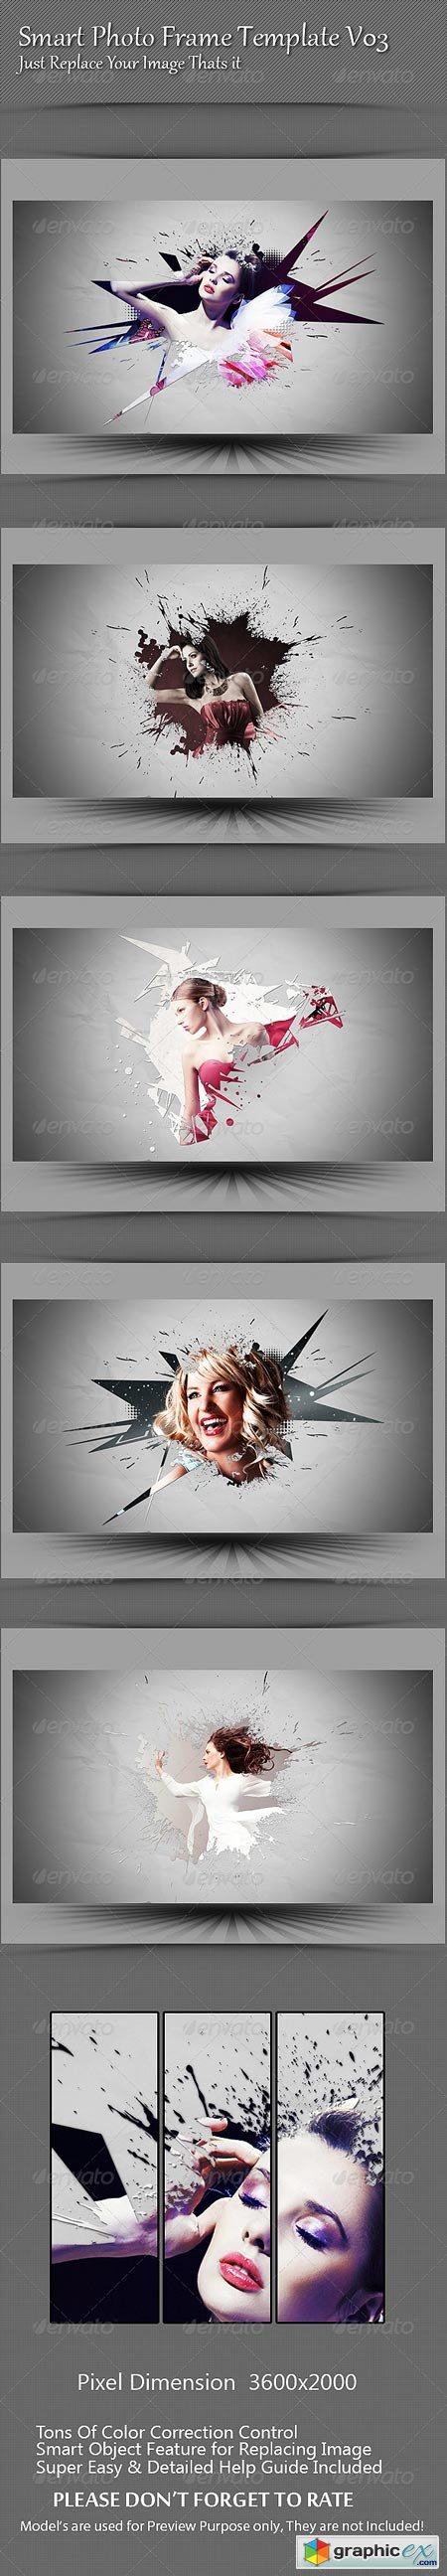 Smart Photo Frame Template V03 8429425